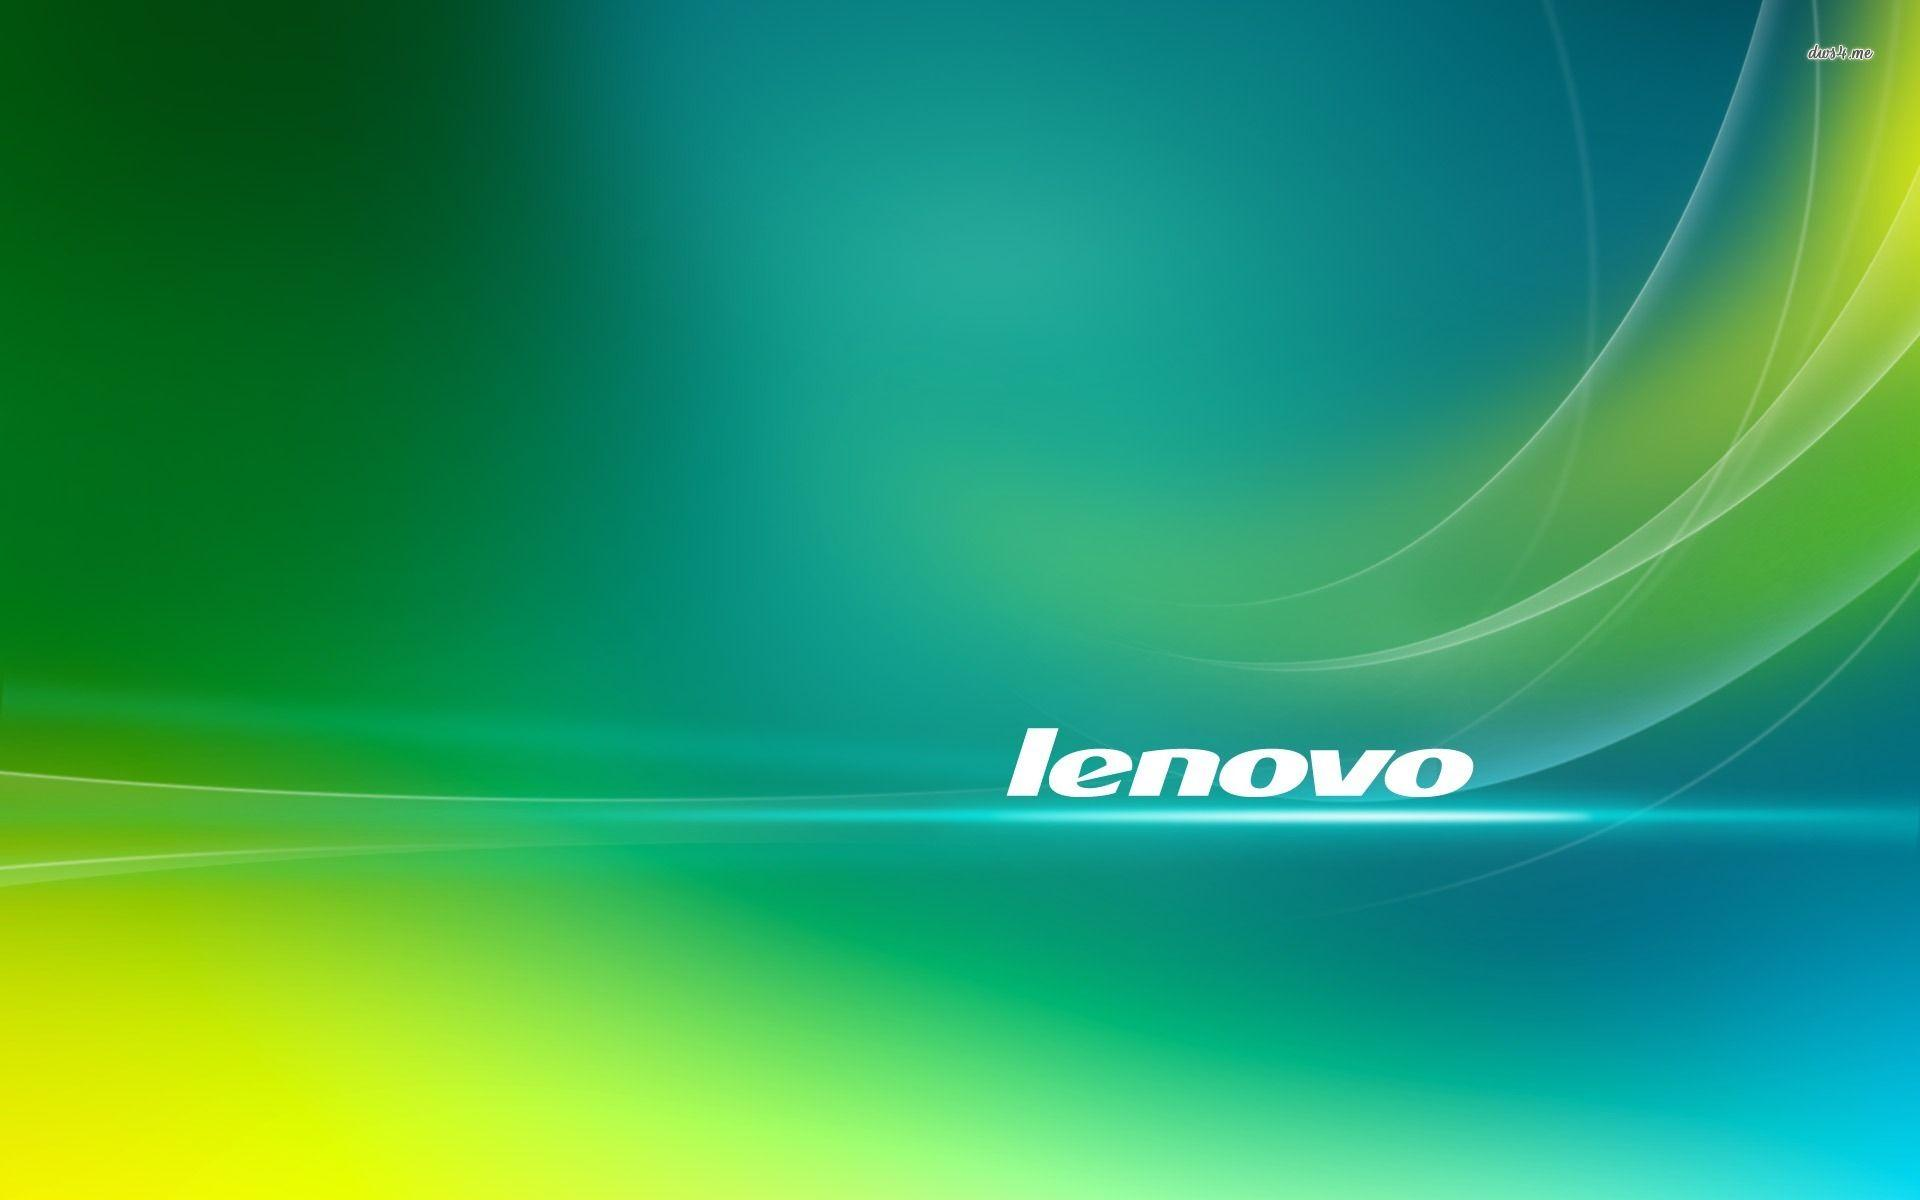 1280x800 wallpaper thinkpad - photo #41